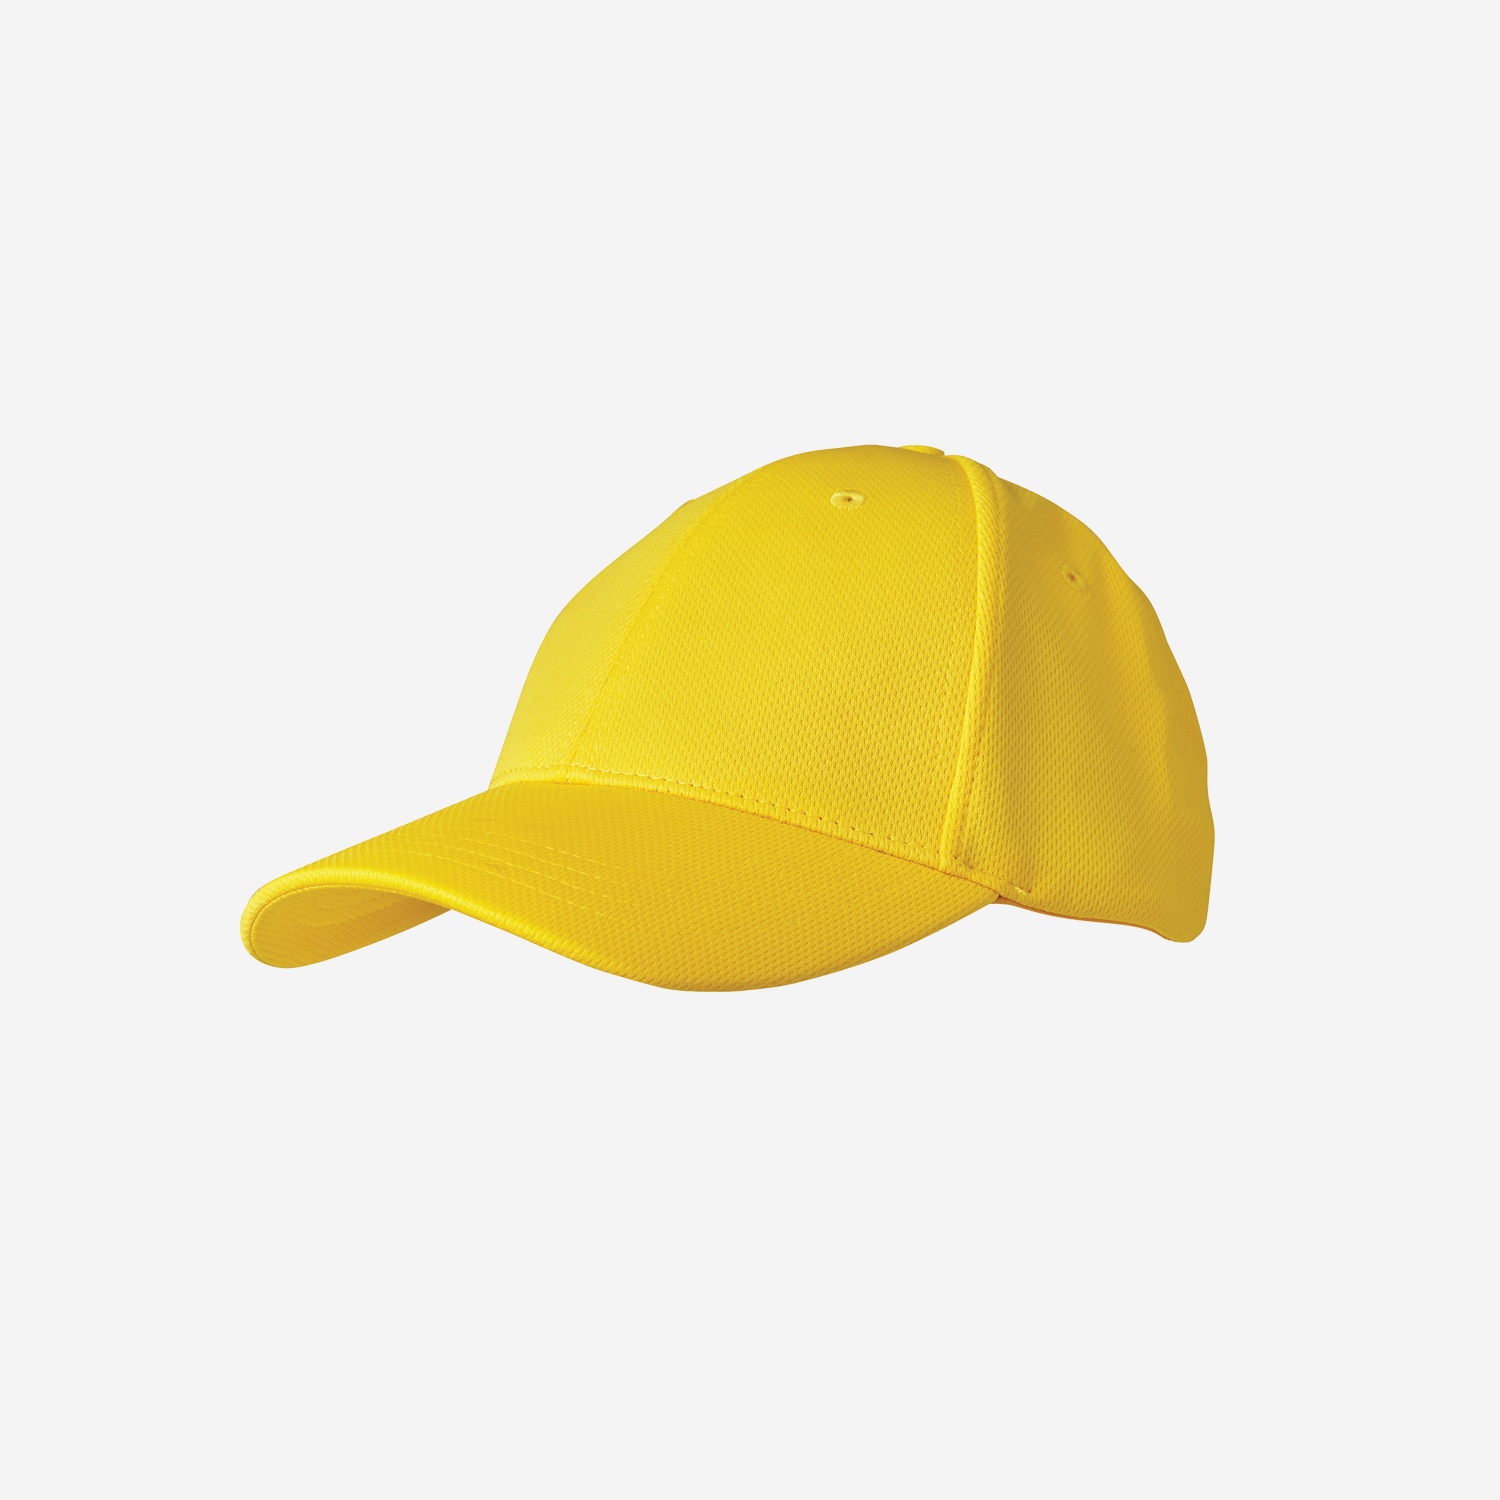 Cricket Cap